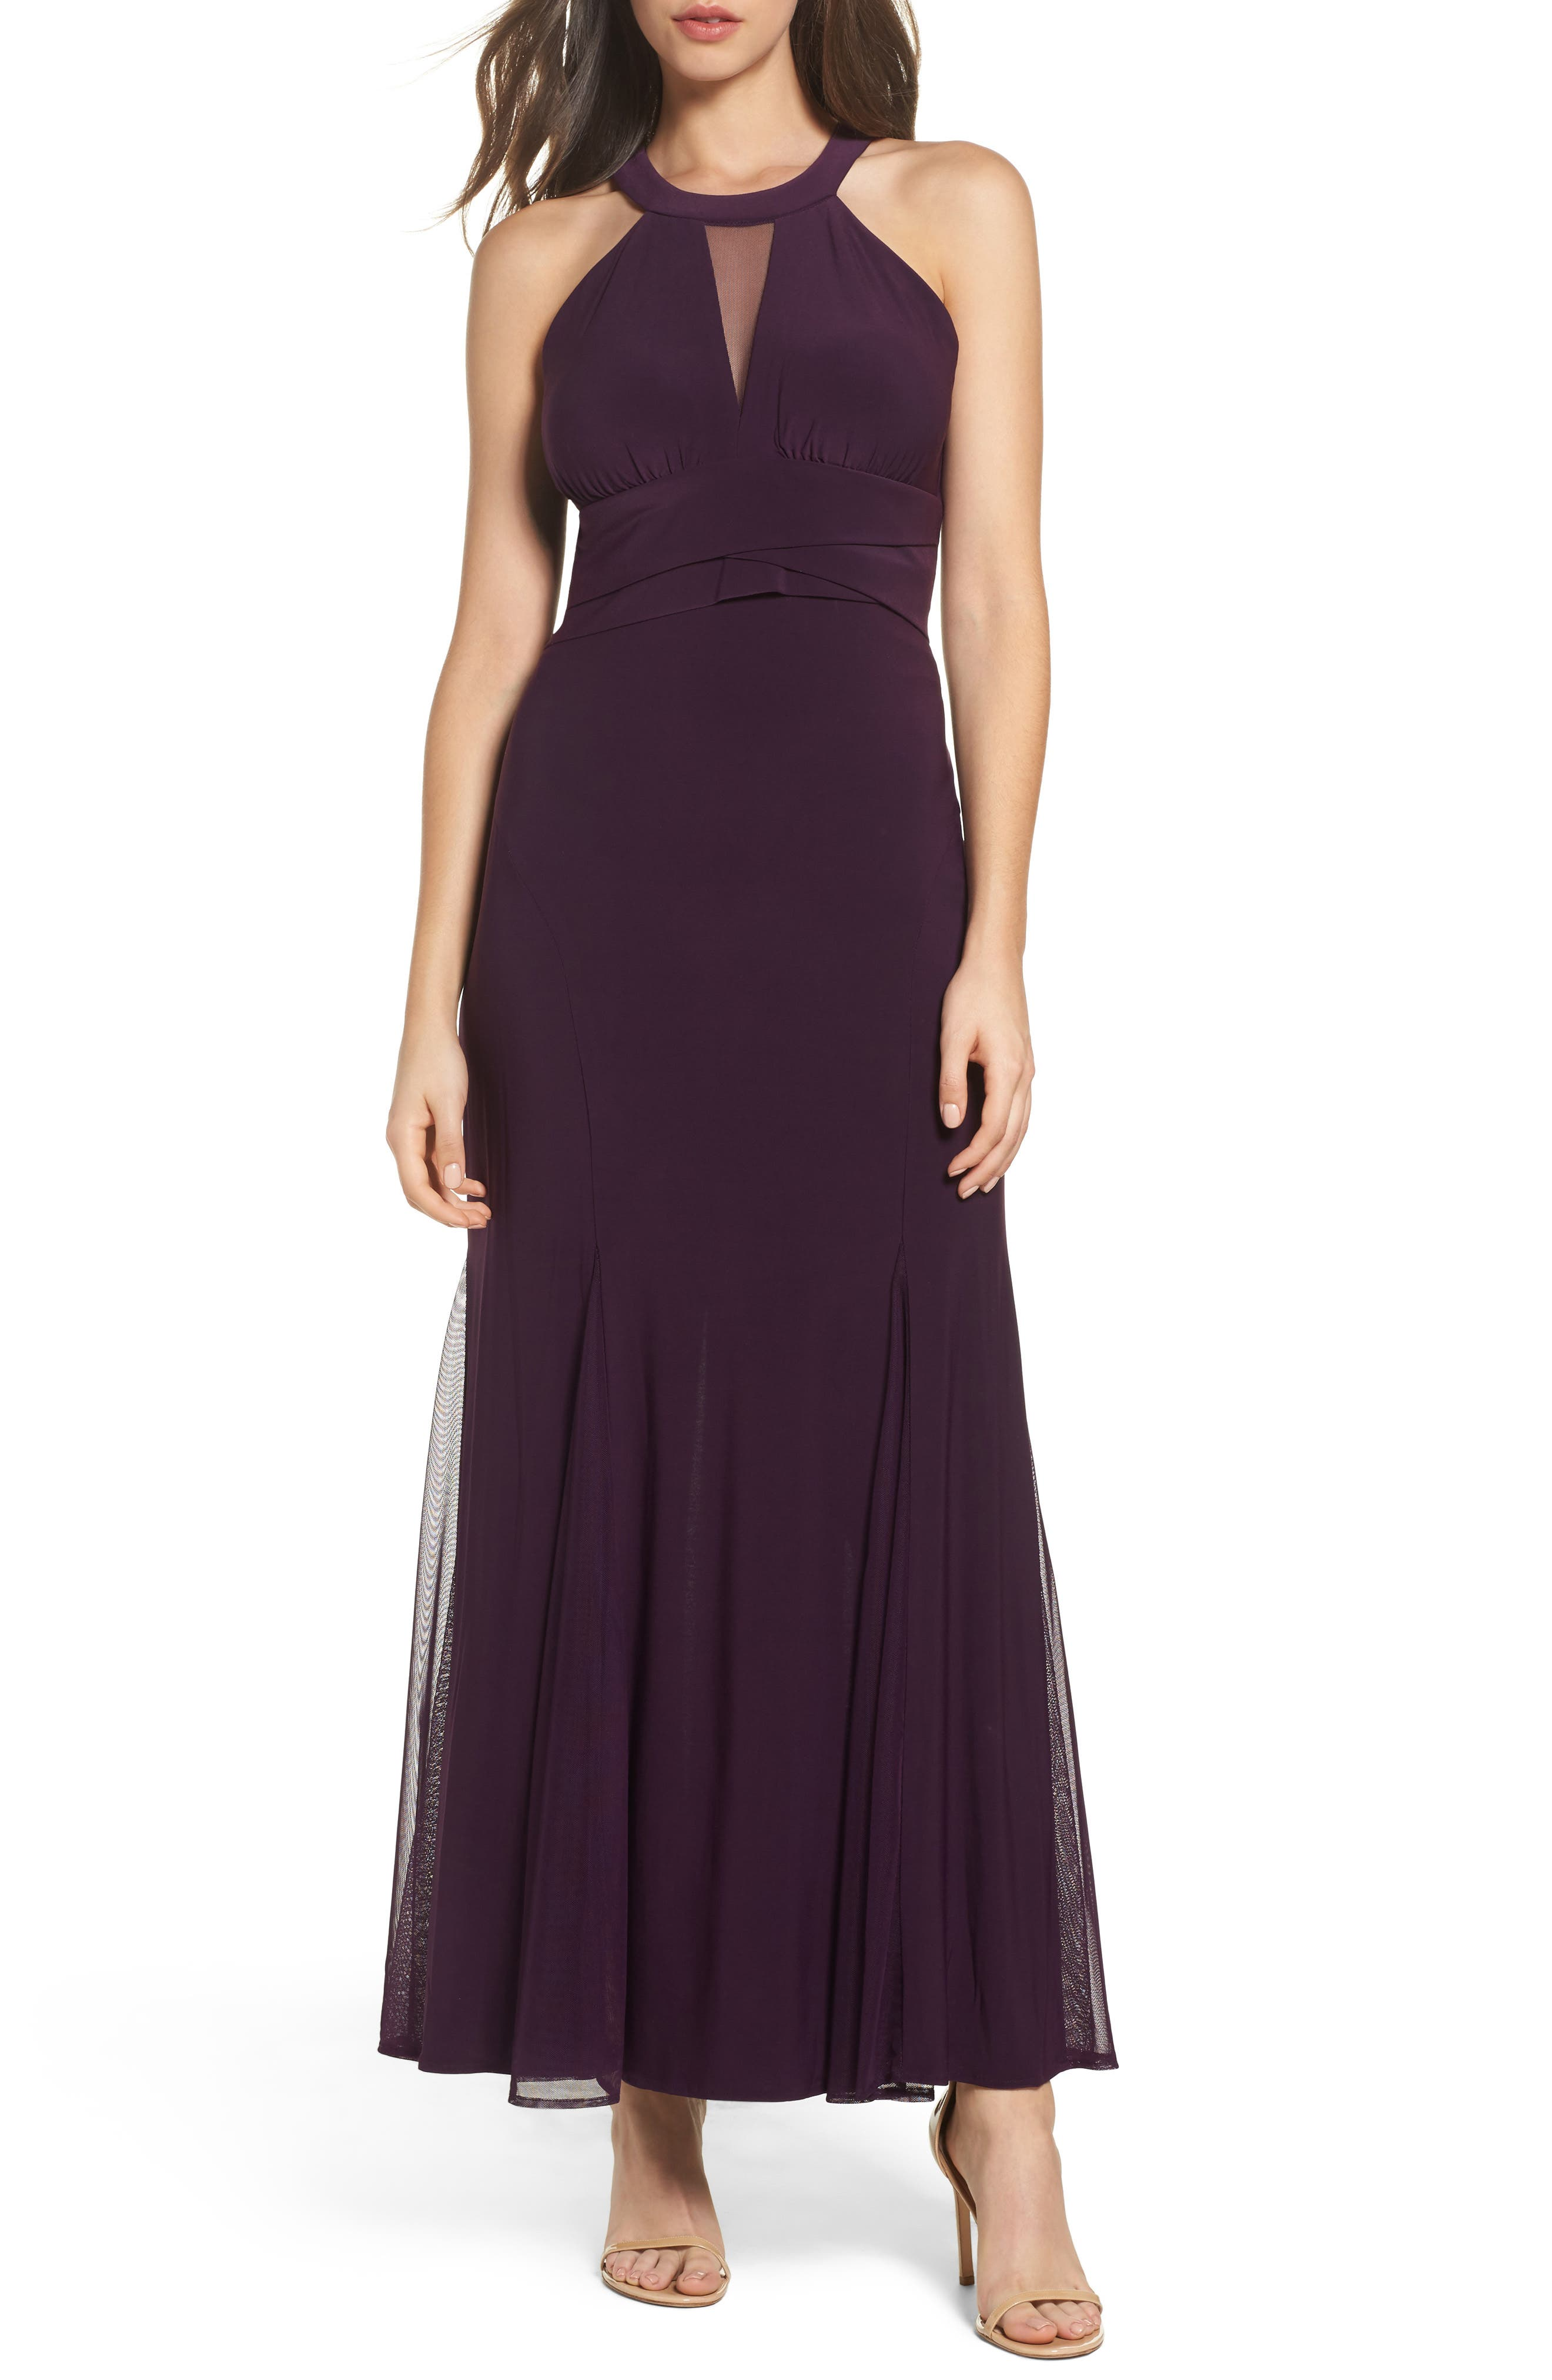 Mesh Insert Halter Neck Mermaid Dress,                         Main,                         color, Plum